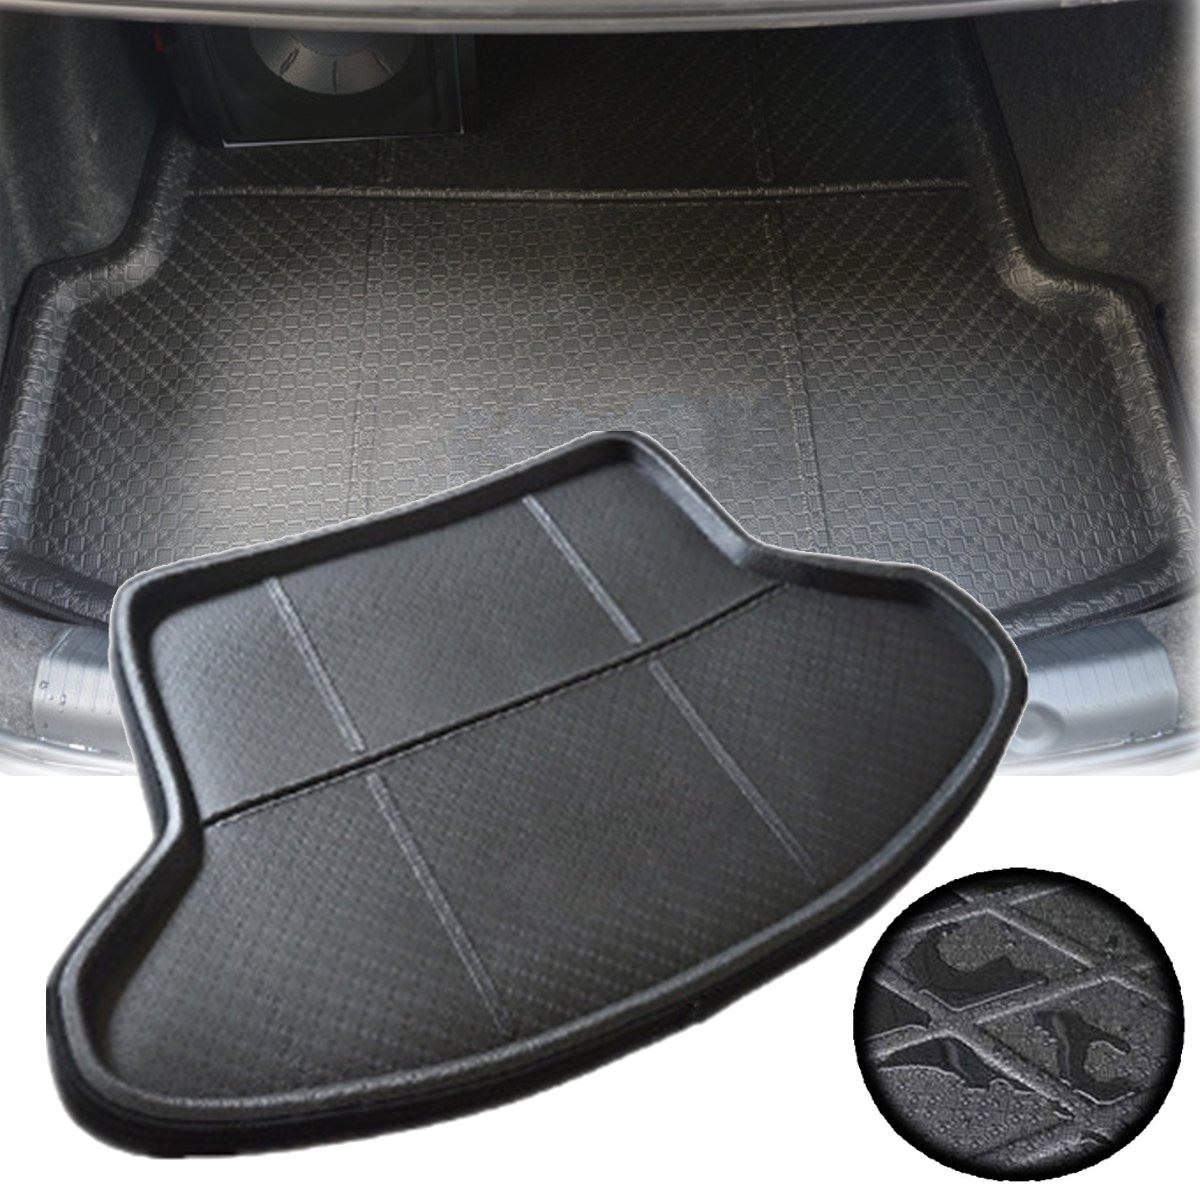 Mat Carpet Liner Cushion Trunk Waterproof Toyota Floor Rear For Prius Protective-Mats